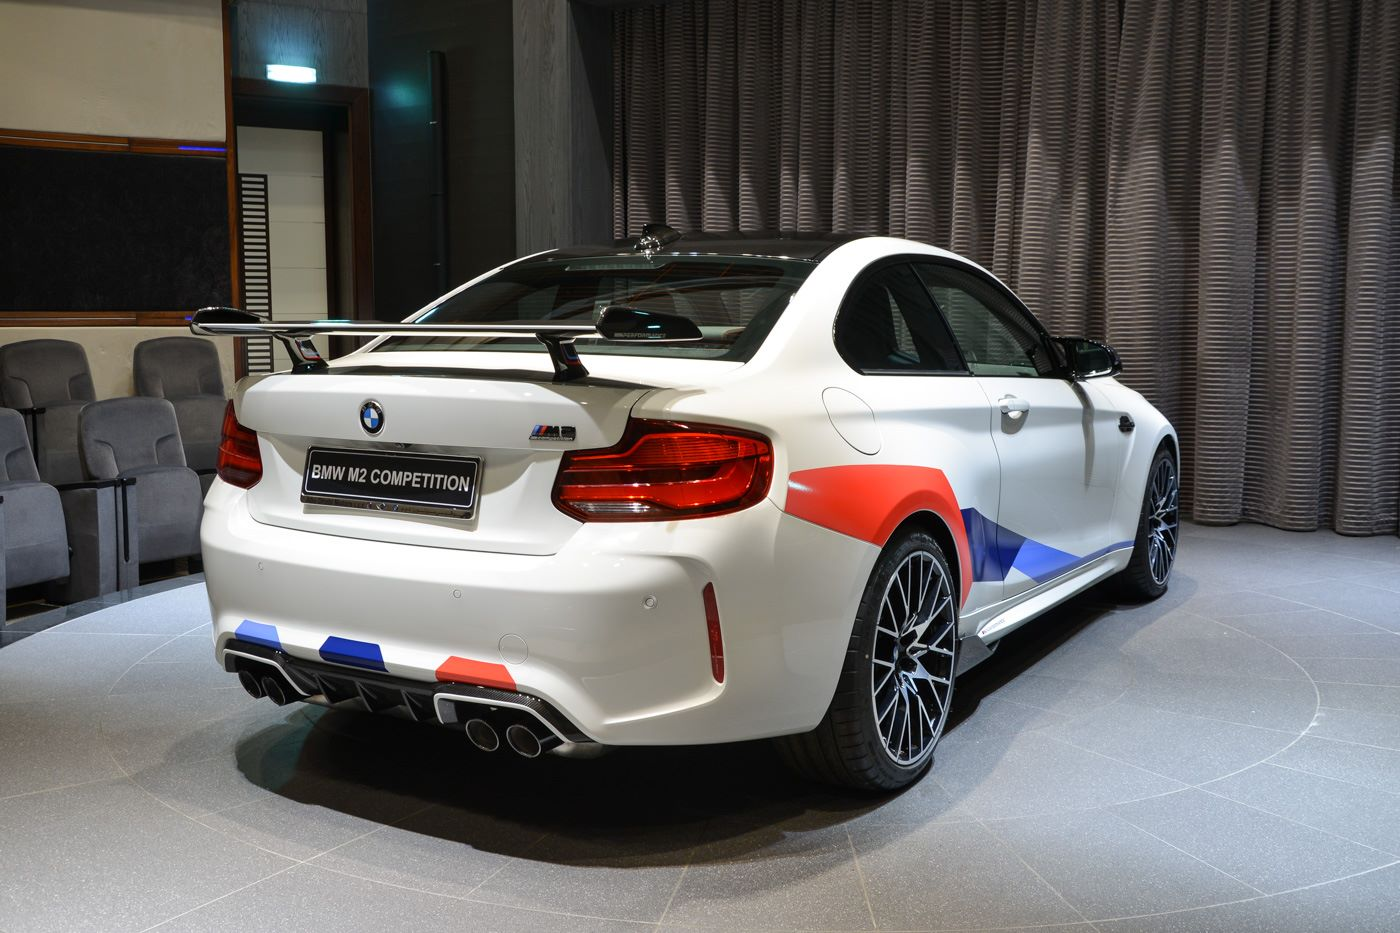 bmw m2 competition gets decked out with m performance parts. Black Bedroom Furniture Sets. Home Design Ideas